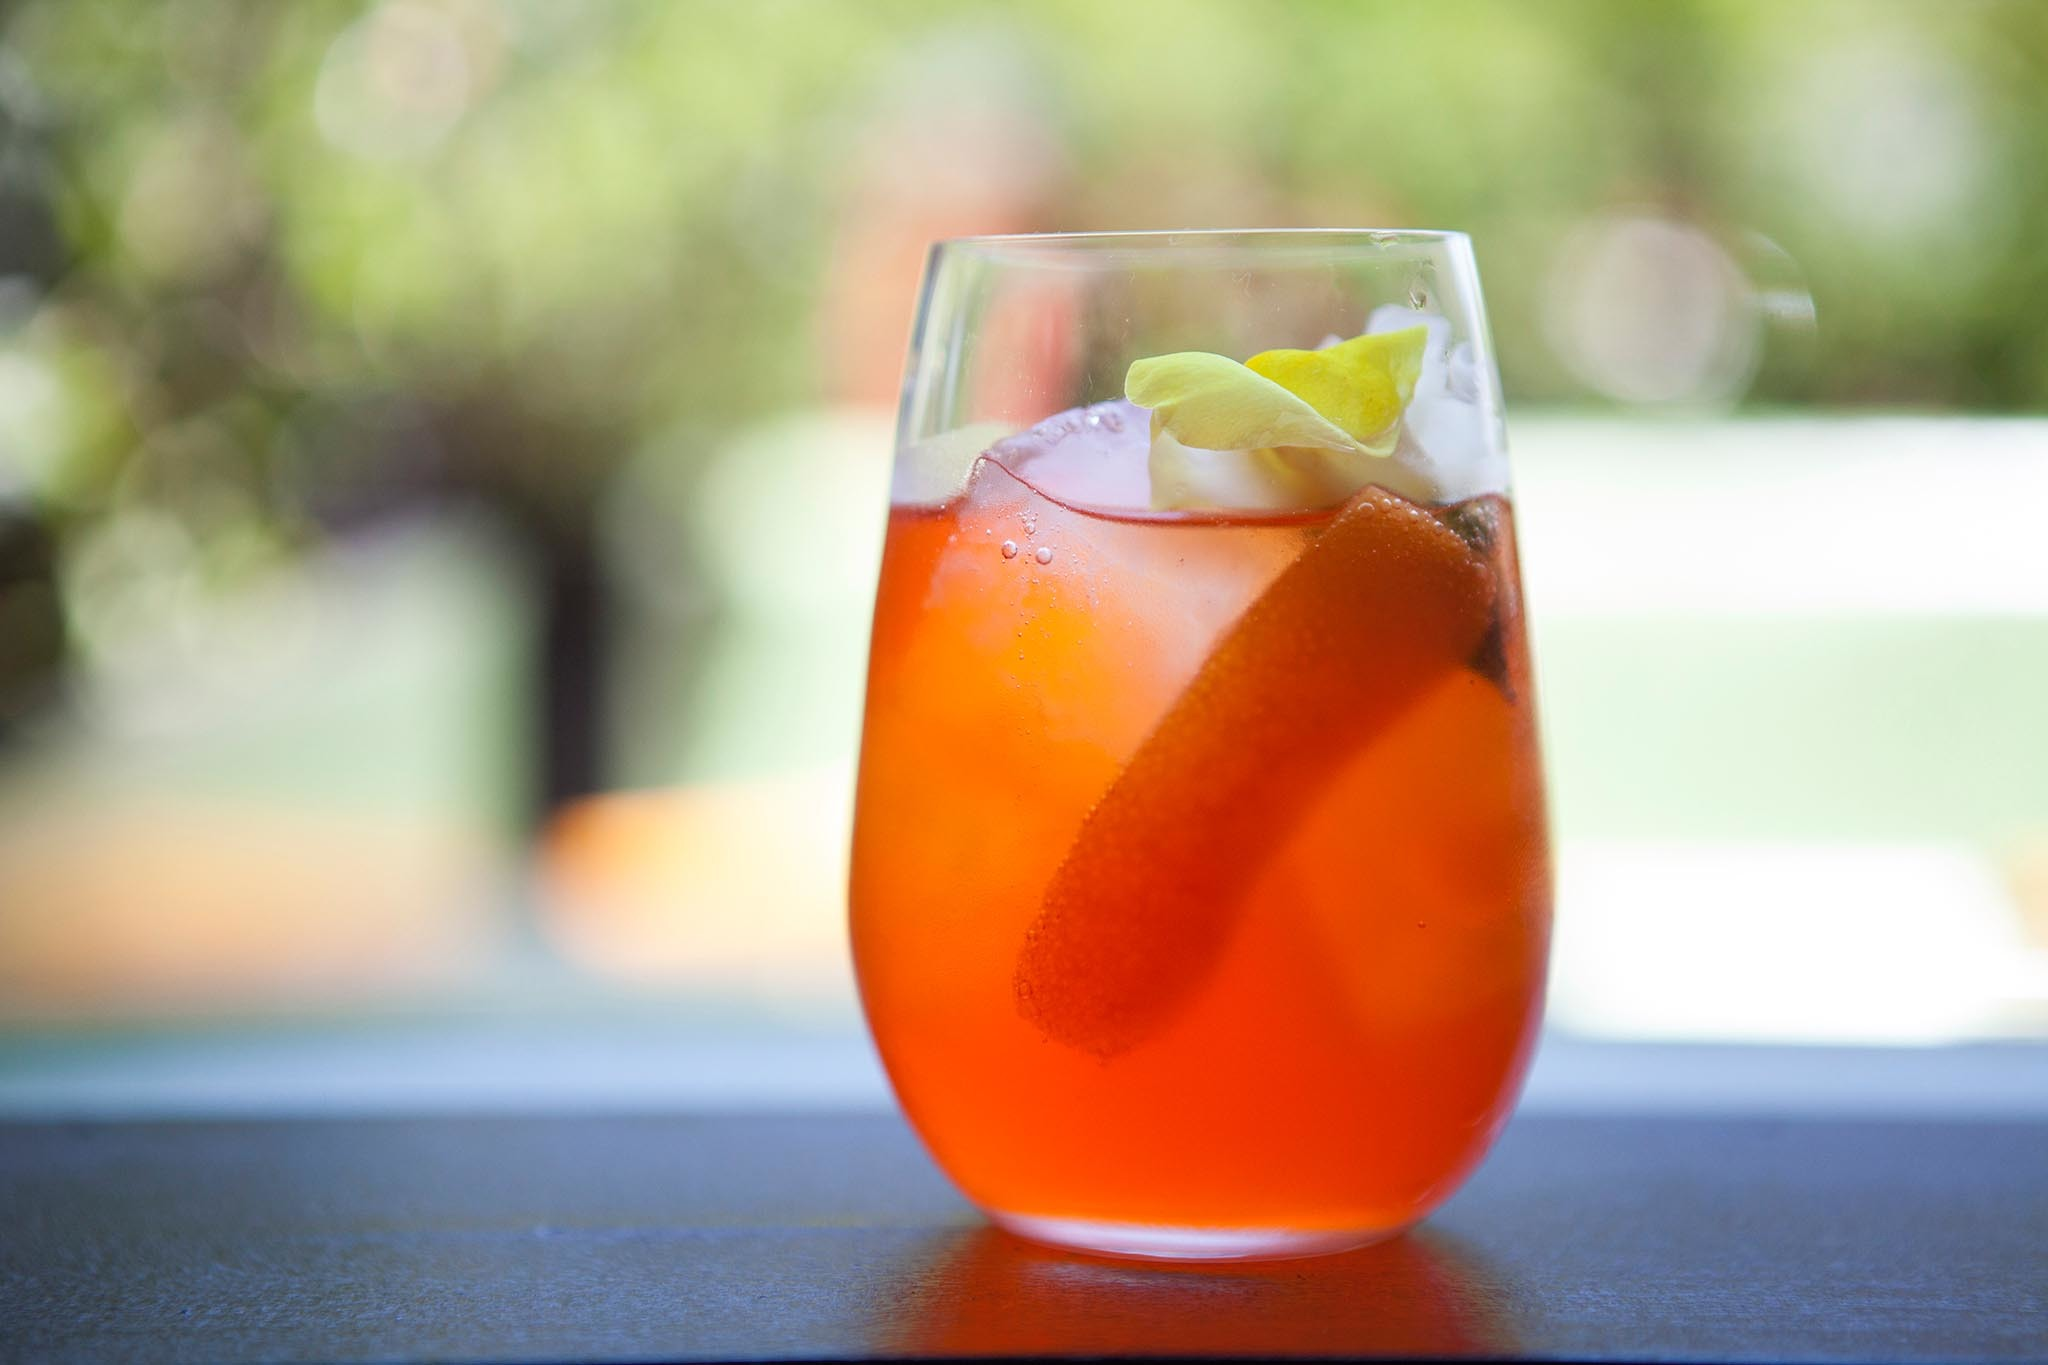 Sip on a summer cocktail